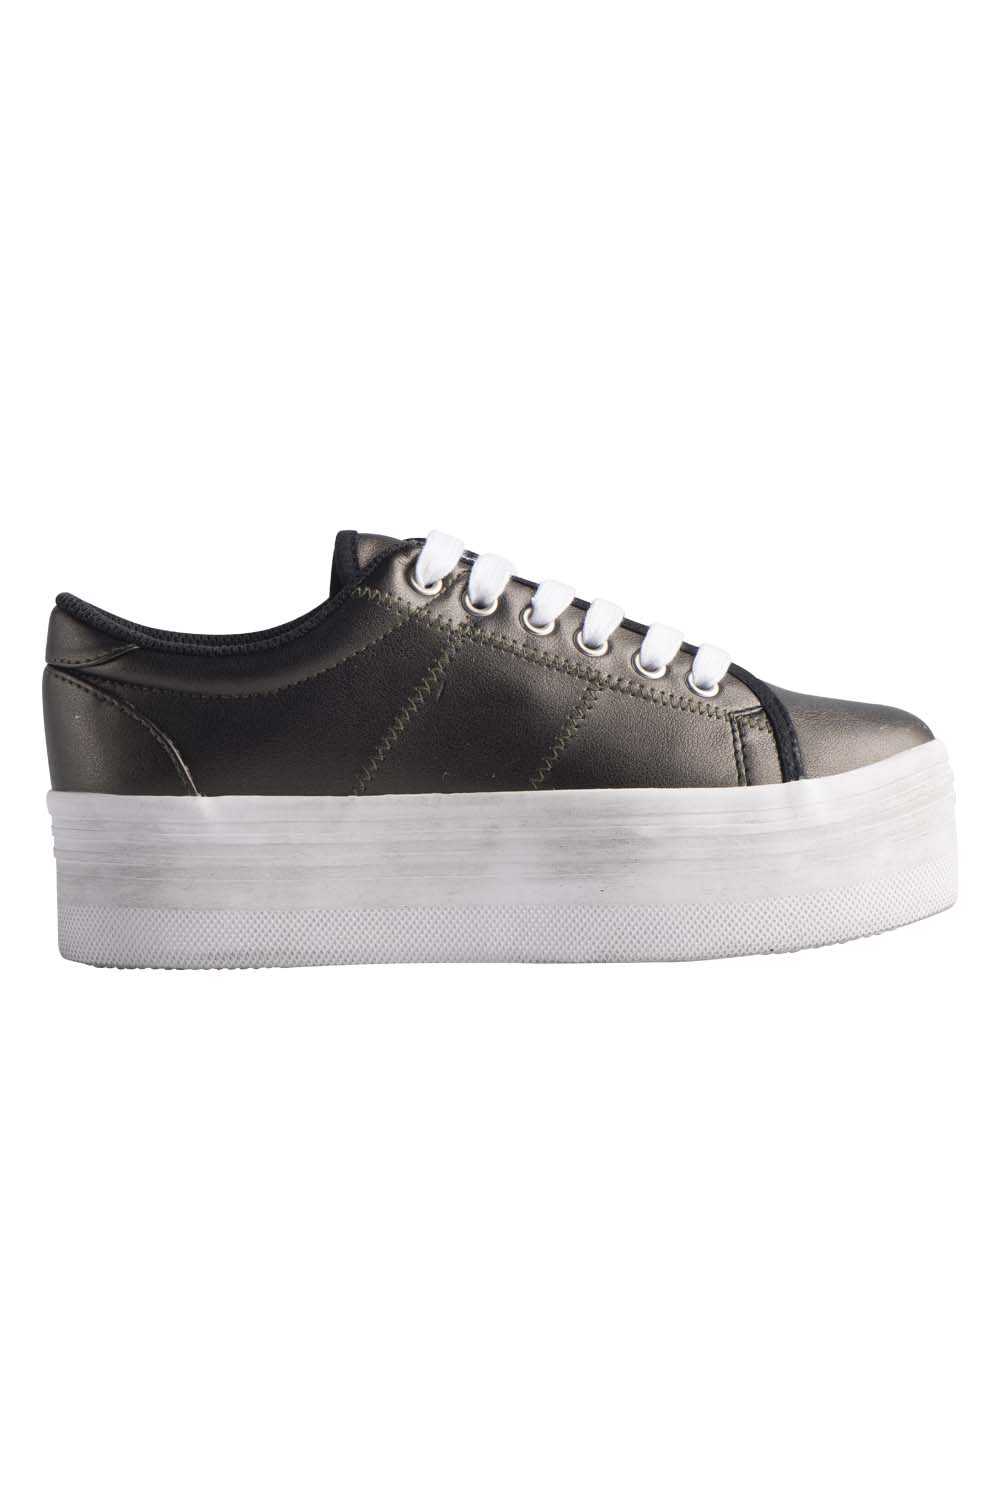 JEFFREY CAMPBELL SNEAKERS - ZOMG GUNMETAL LEATHER.jpg